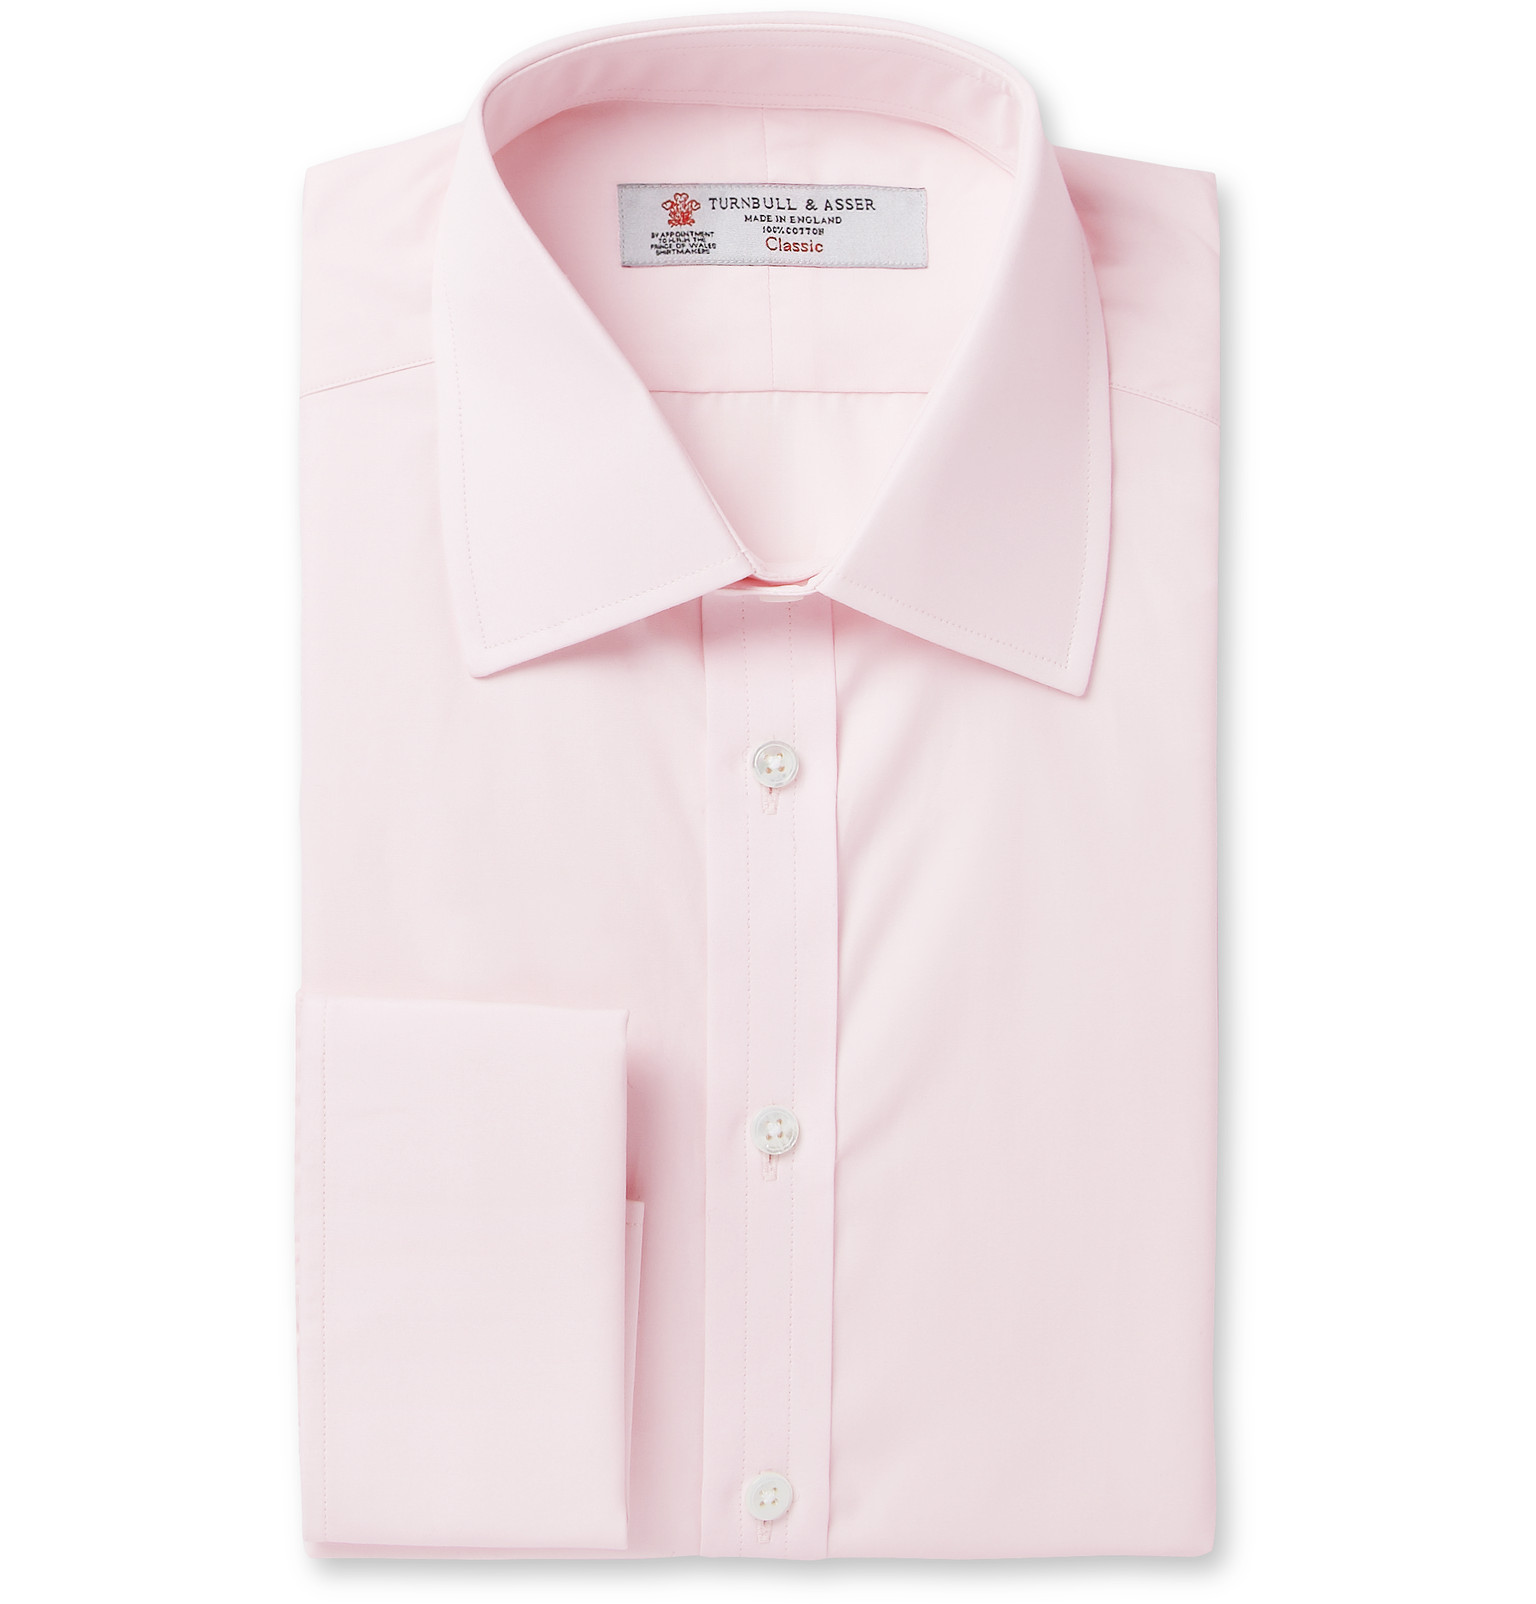 Turnbull & Asser - Pink Double-Cuff Cotton Shirt